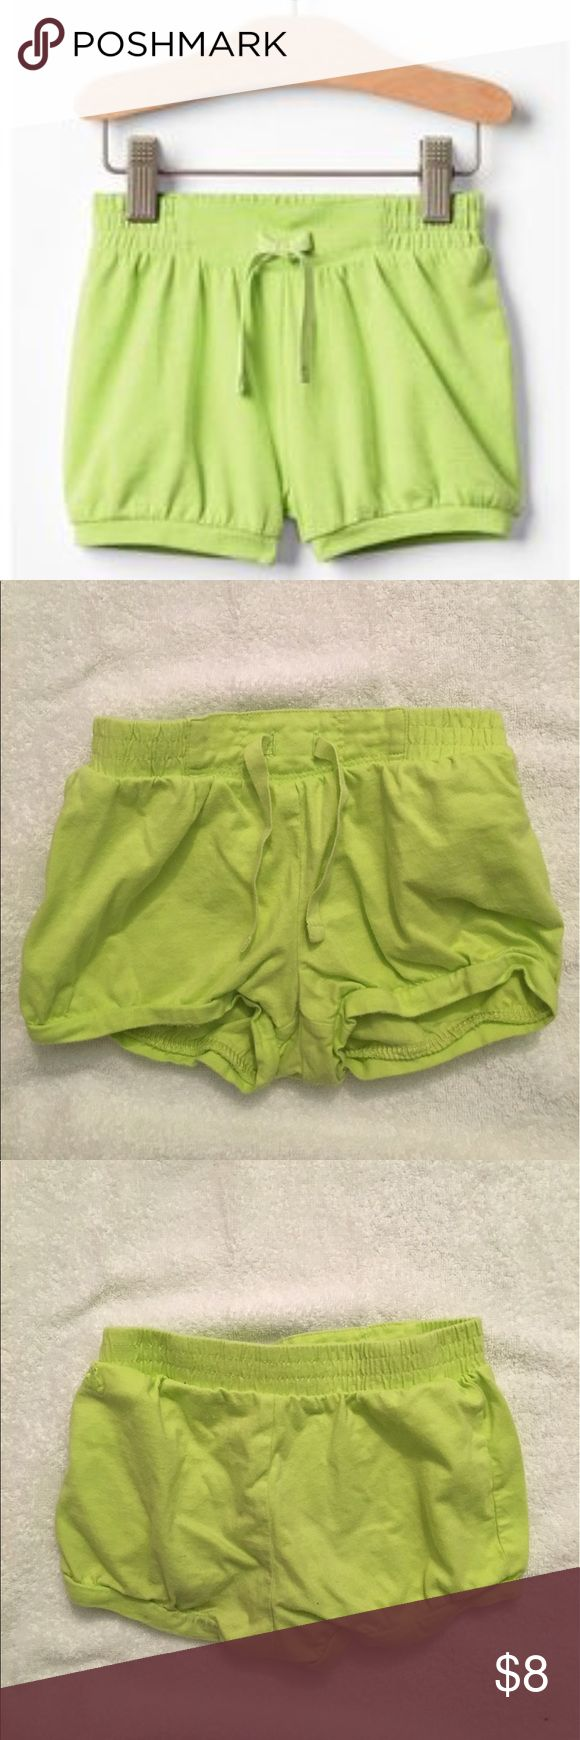 Baby Gap Green Bubble Shorts Baby Gap Neon Green Jersey Bubble Shorts. Size 3T. 100% soft cotton jersey. Drawcord ties at comfy, elasticized waist. Elasticized cuffs. I have multiple colors. Bundle to save! GAP Bottoms Shorts